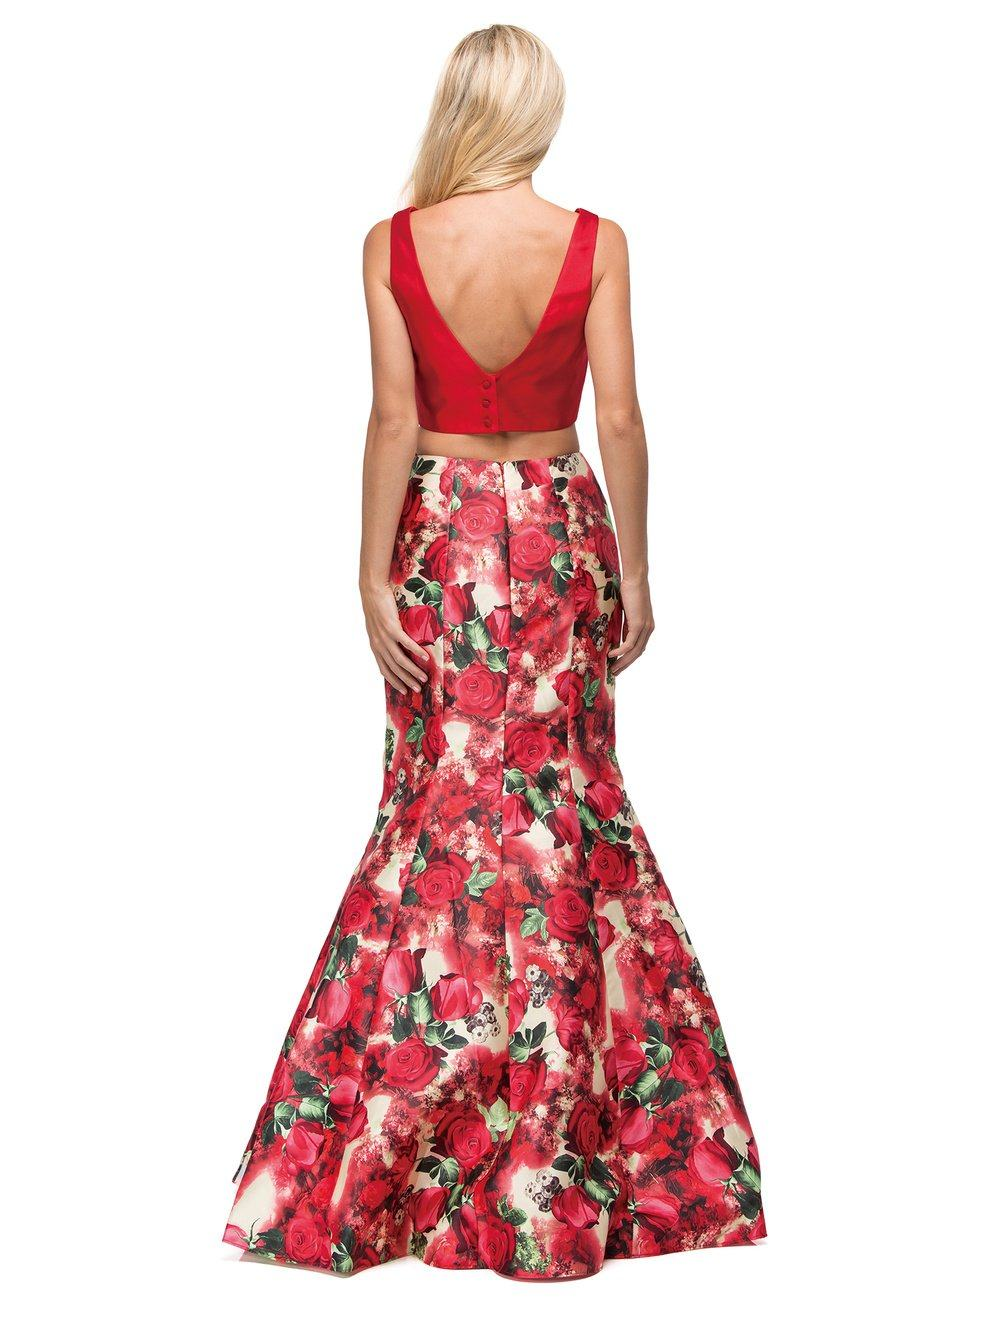 Two Piece Red Floral Mermaid Prom dress dq9900